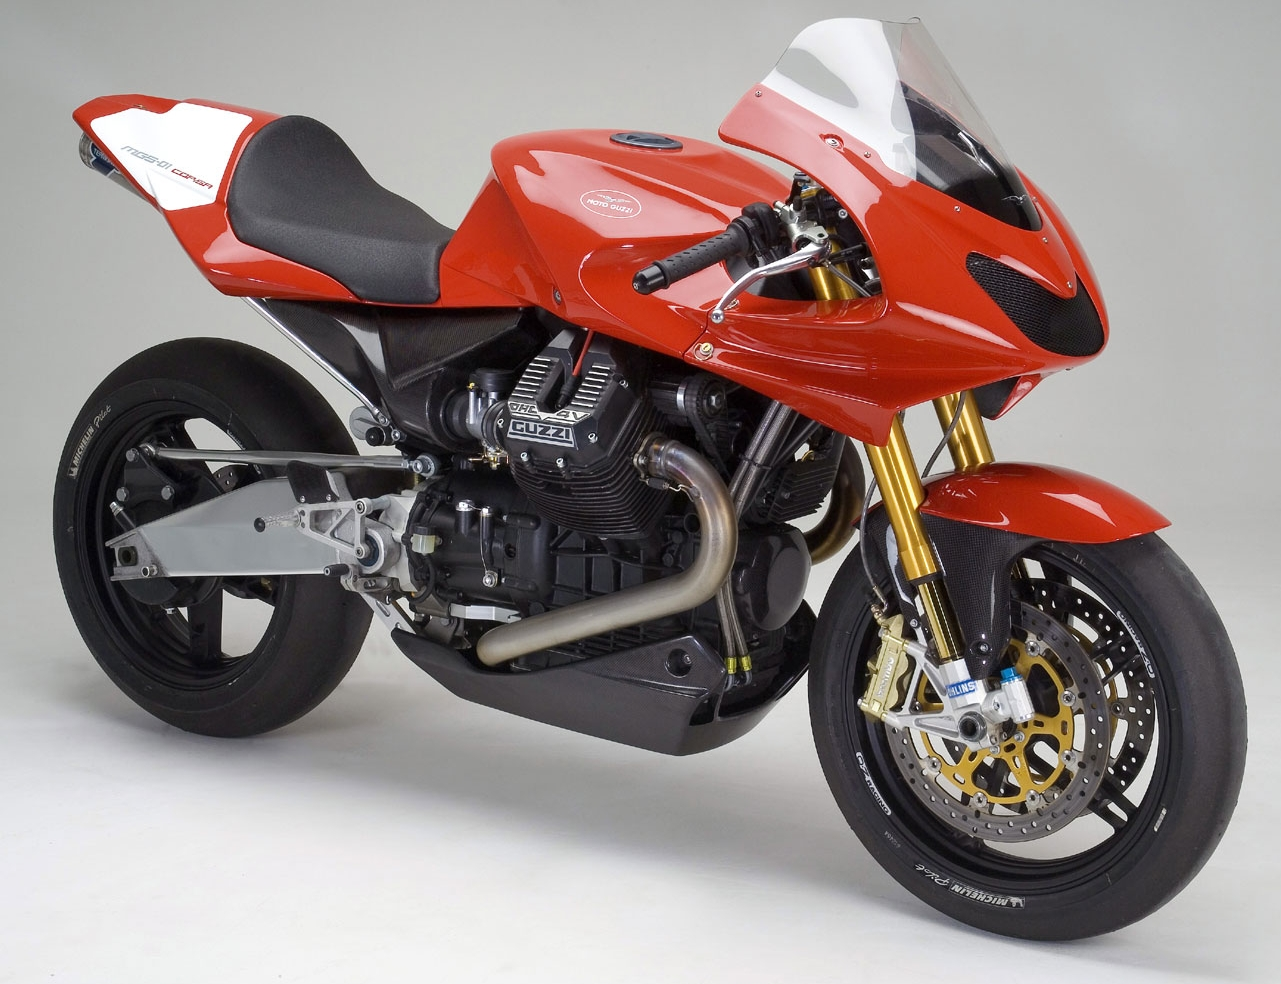 The Guzzi MGS-01 Corsa is a stunner, one of the all-time beauties.